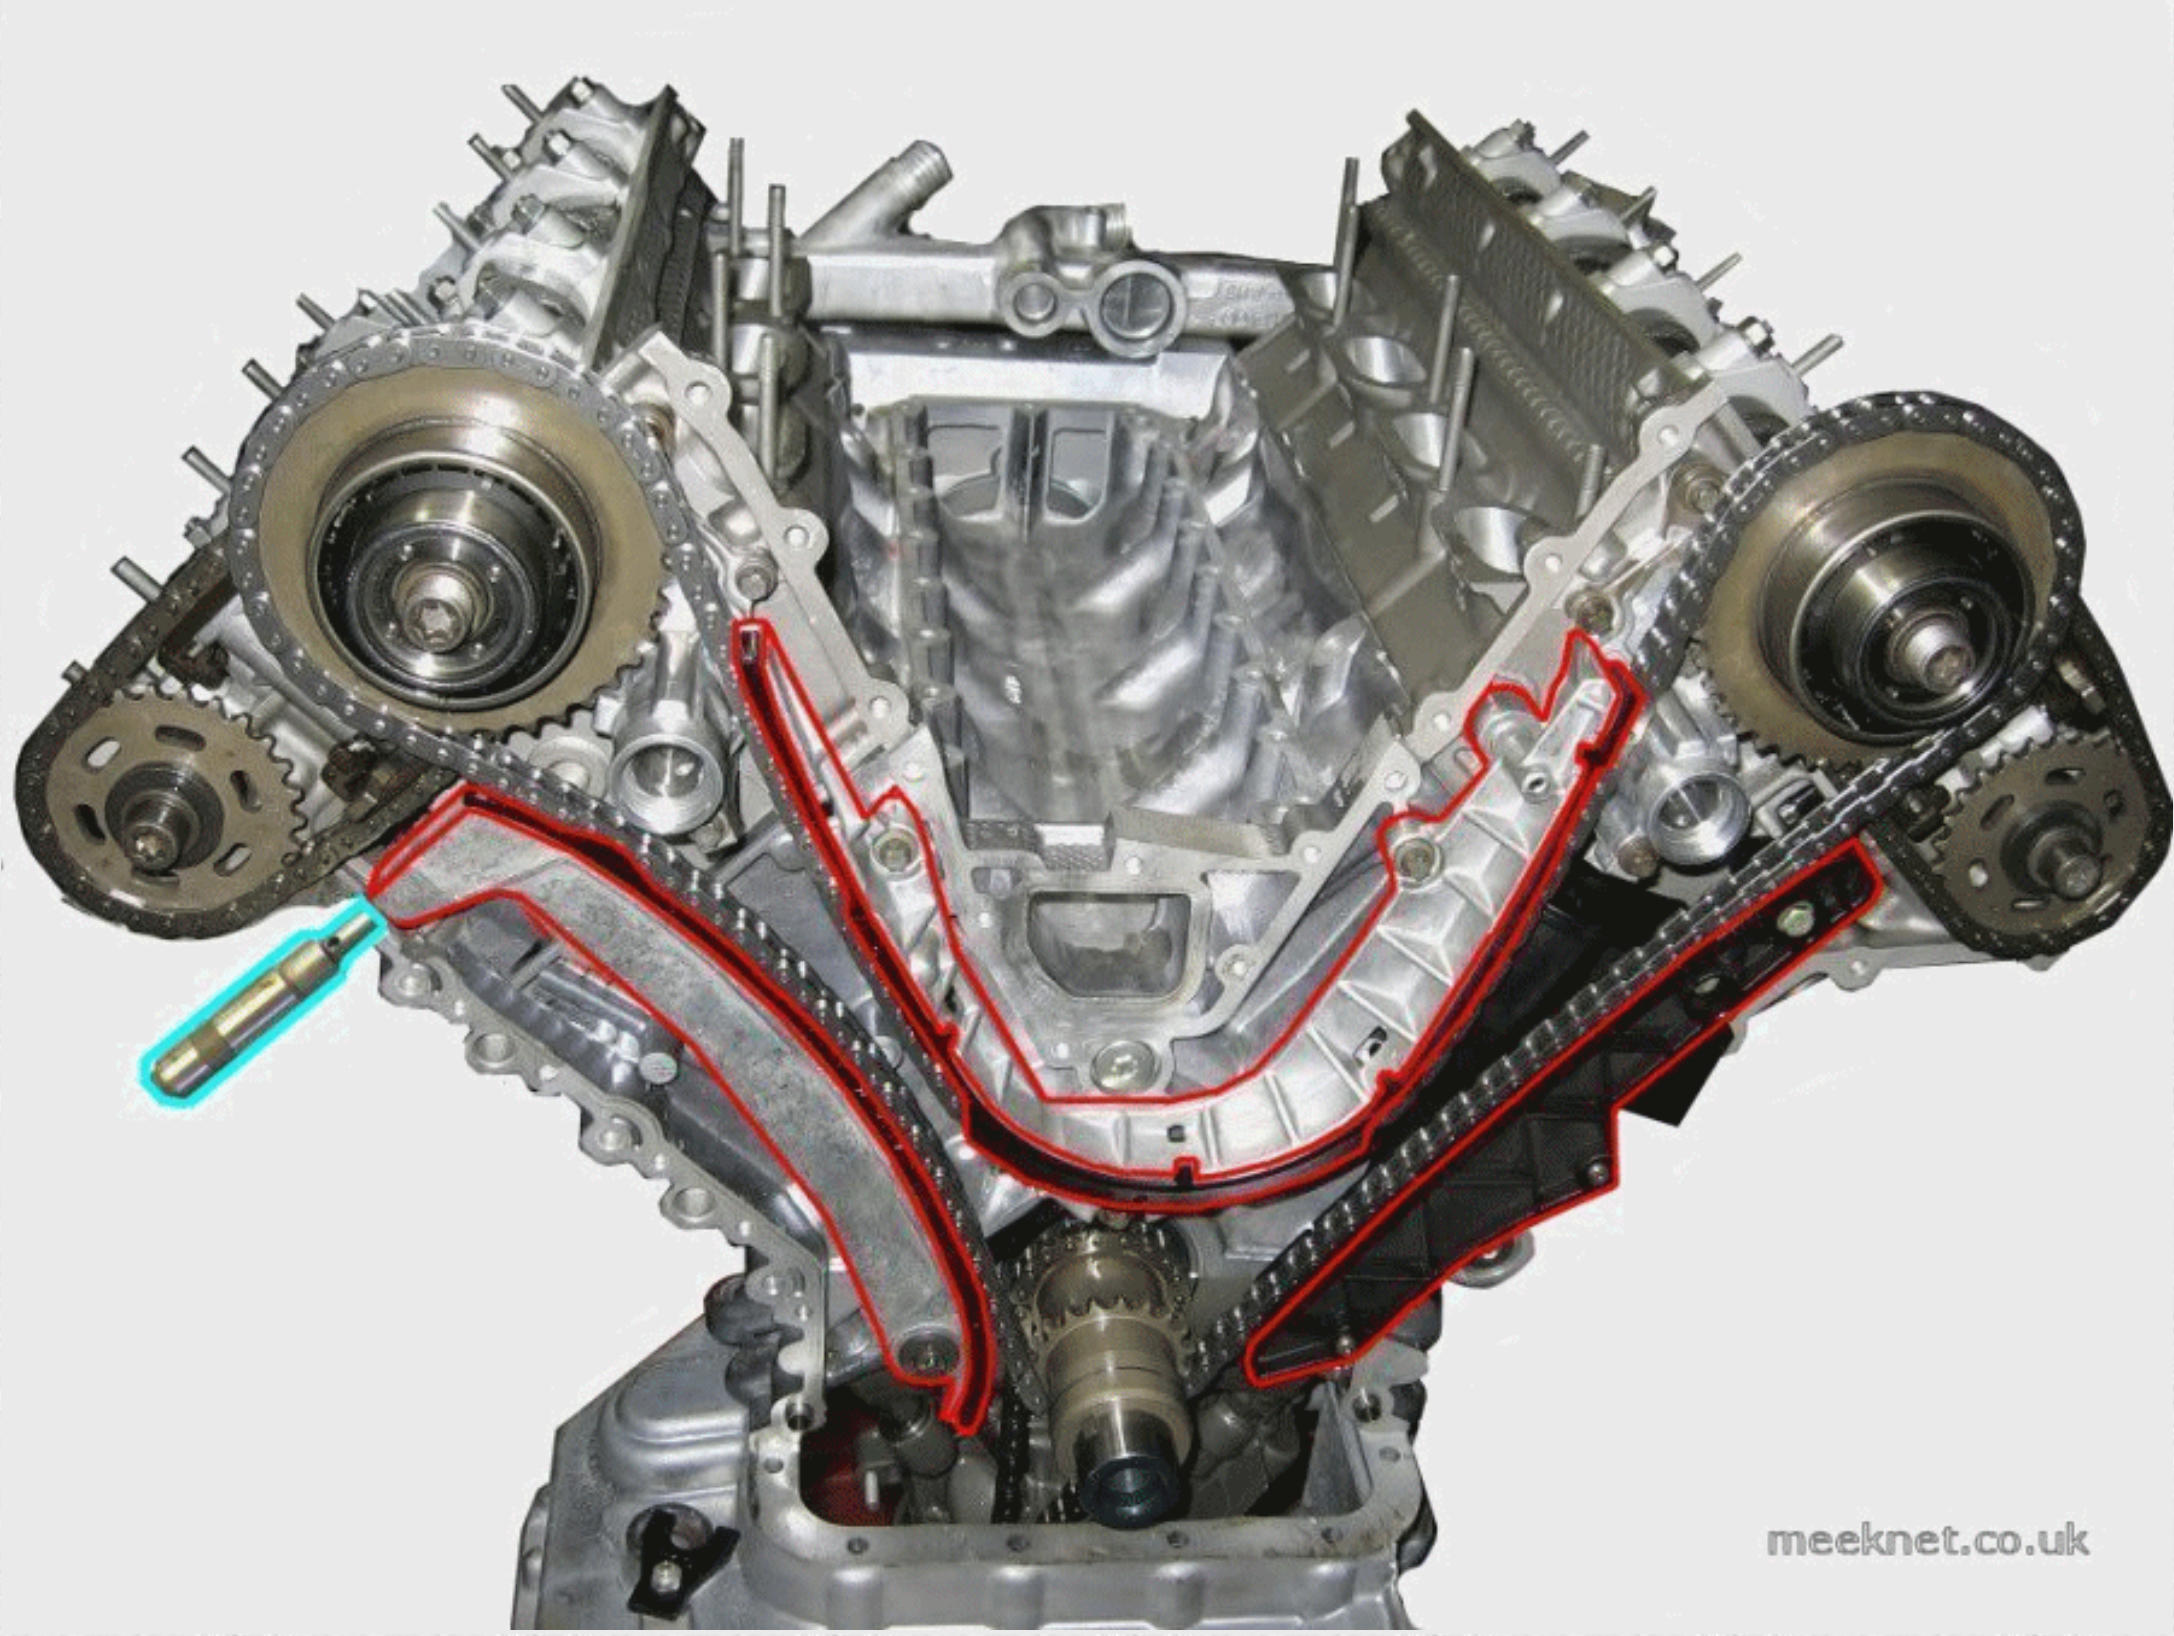 Timm's BMW M60, M62 and M62TUB V8 Engines - Scray Noises